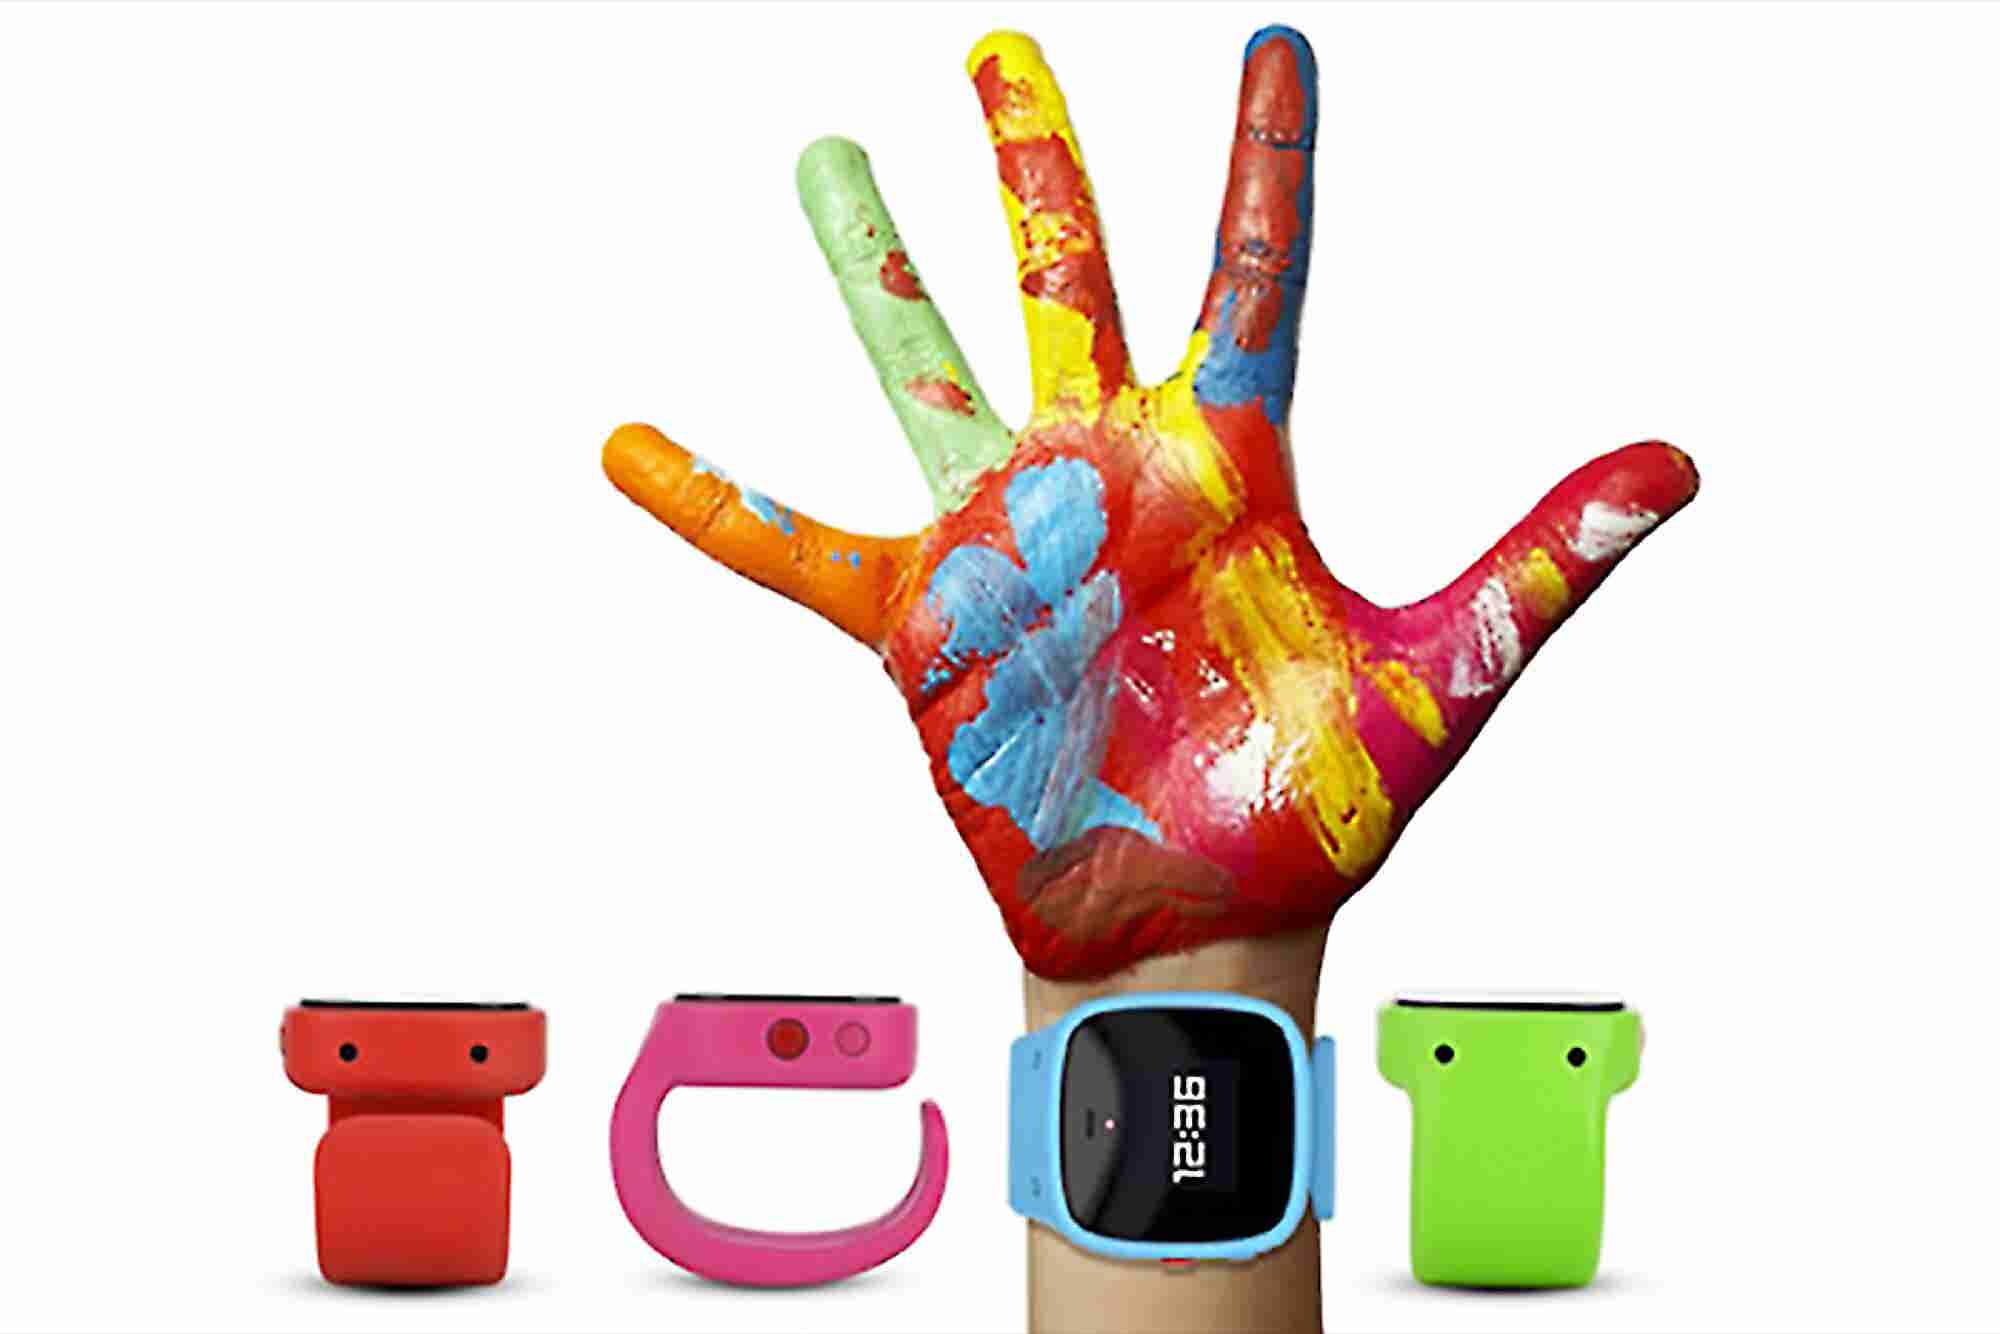 FiLIP Smartwatch Protects Kids From Danger and Angry Birds